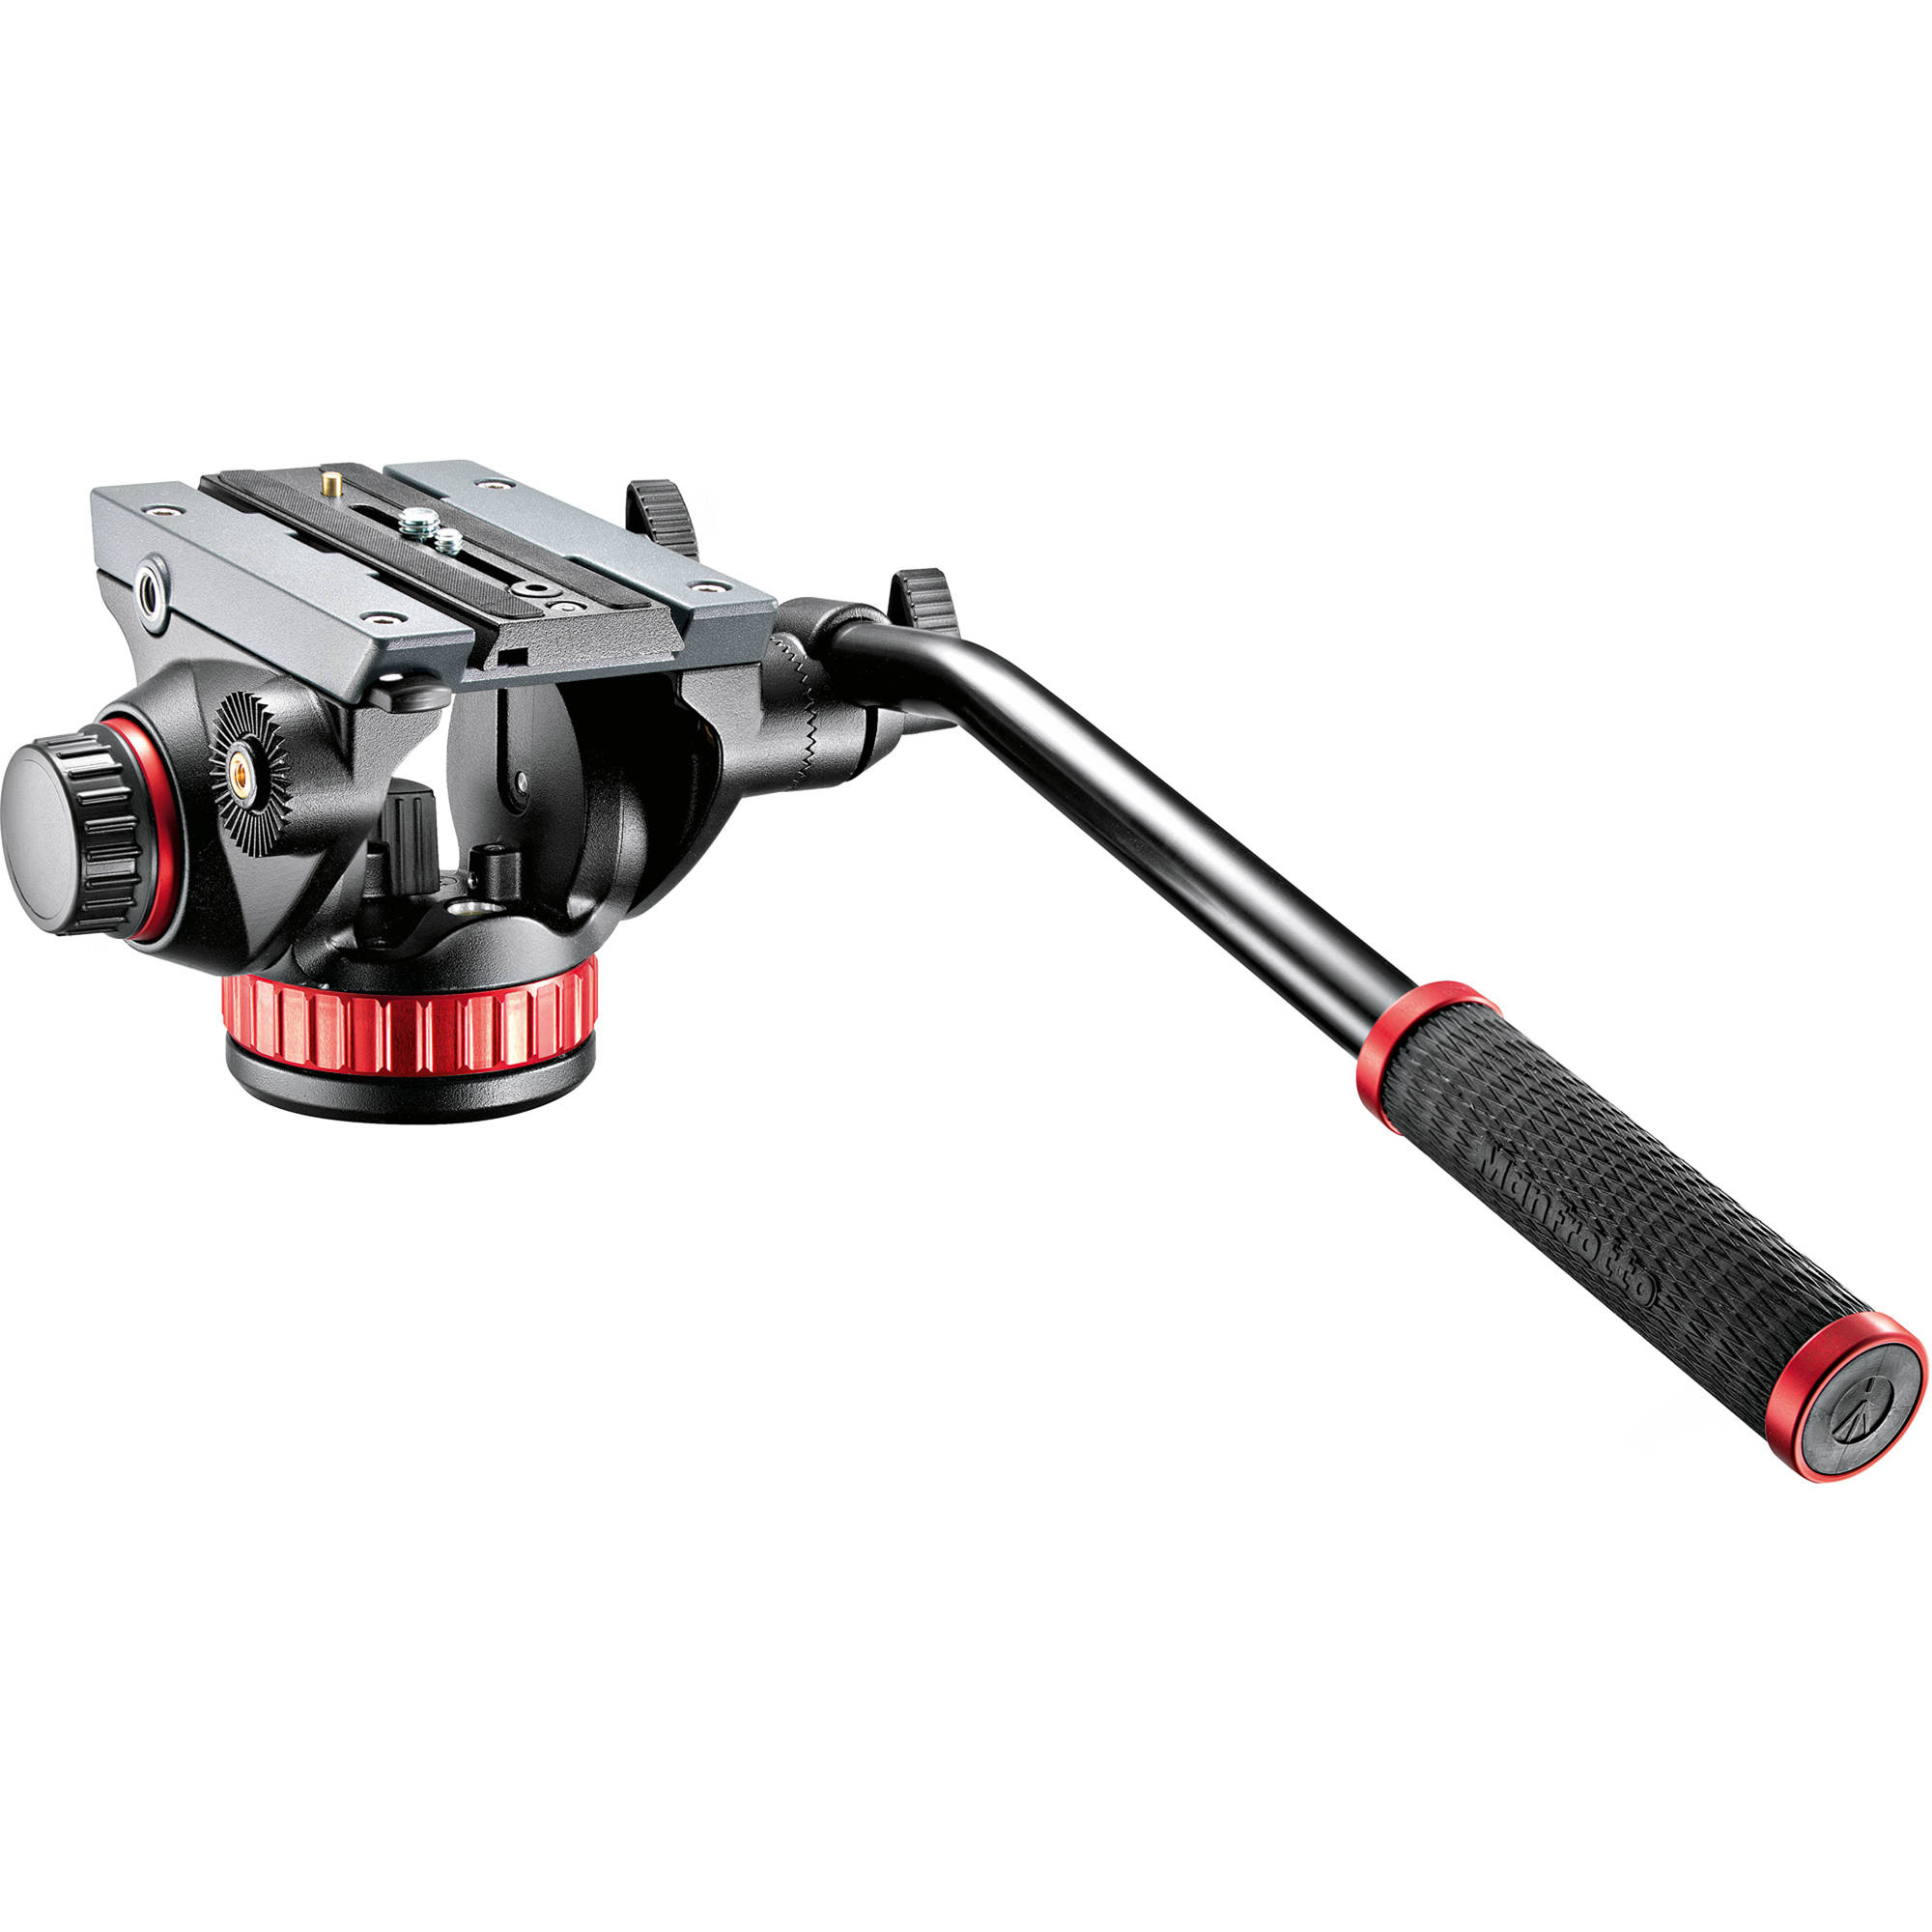 Manfrotto 502AH - Pro Video head with Flat Base